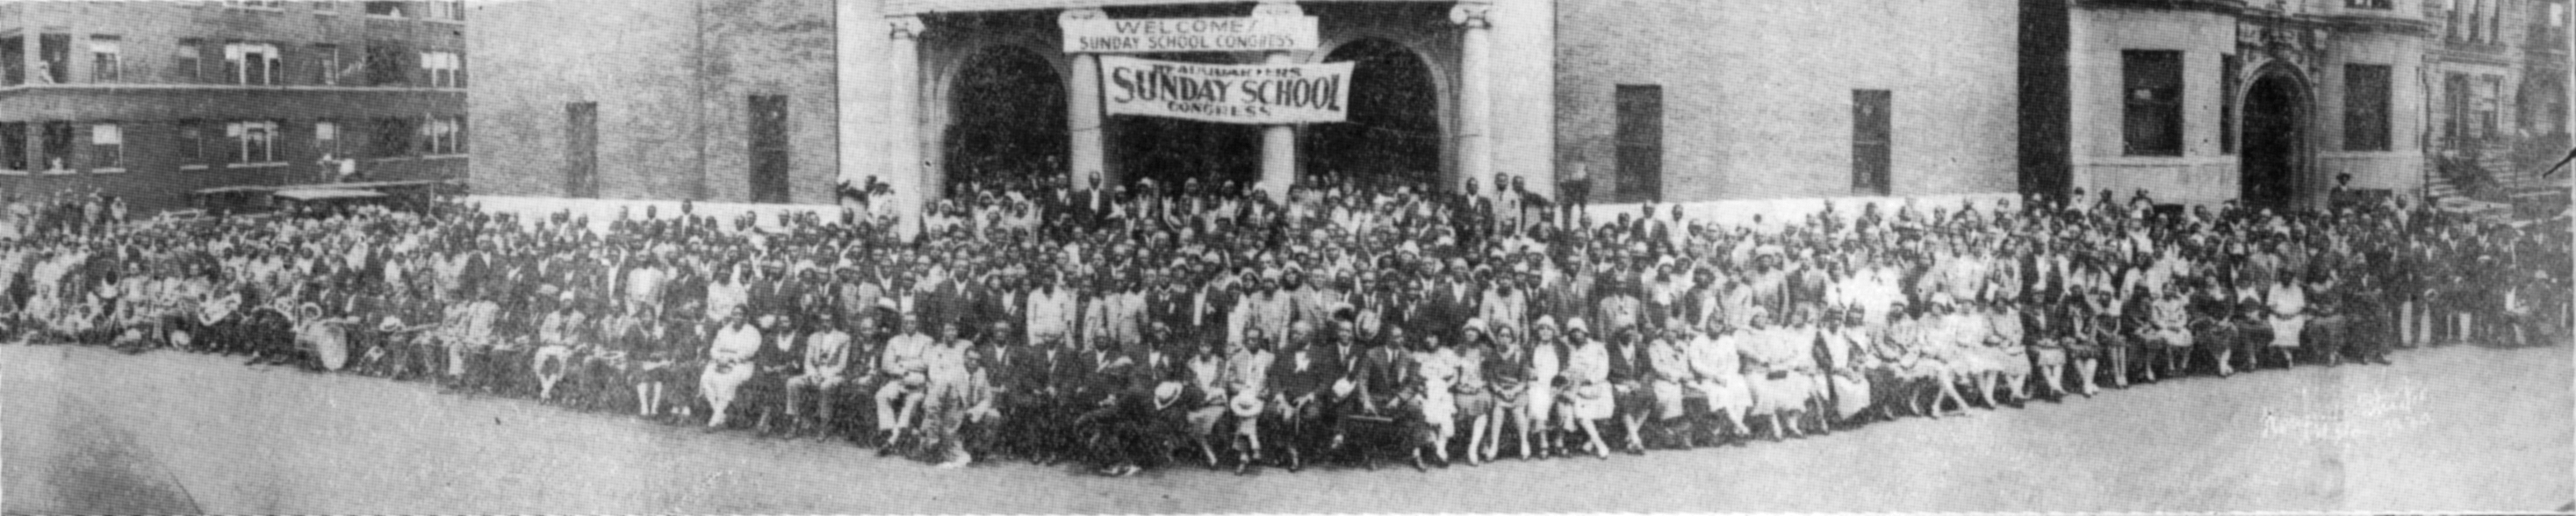 1930 session of the Congress in Chicago, IL